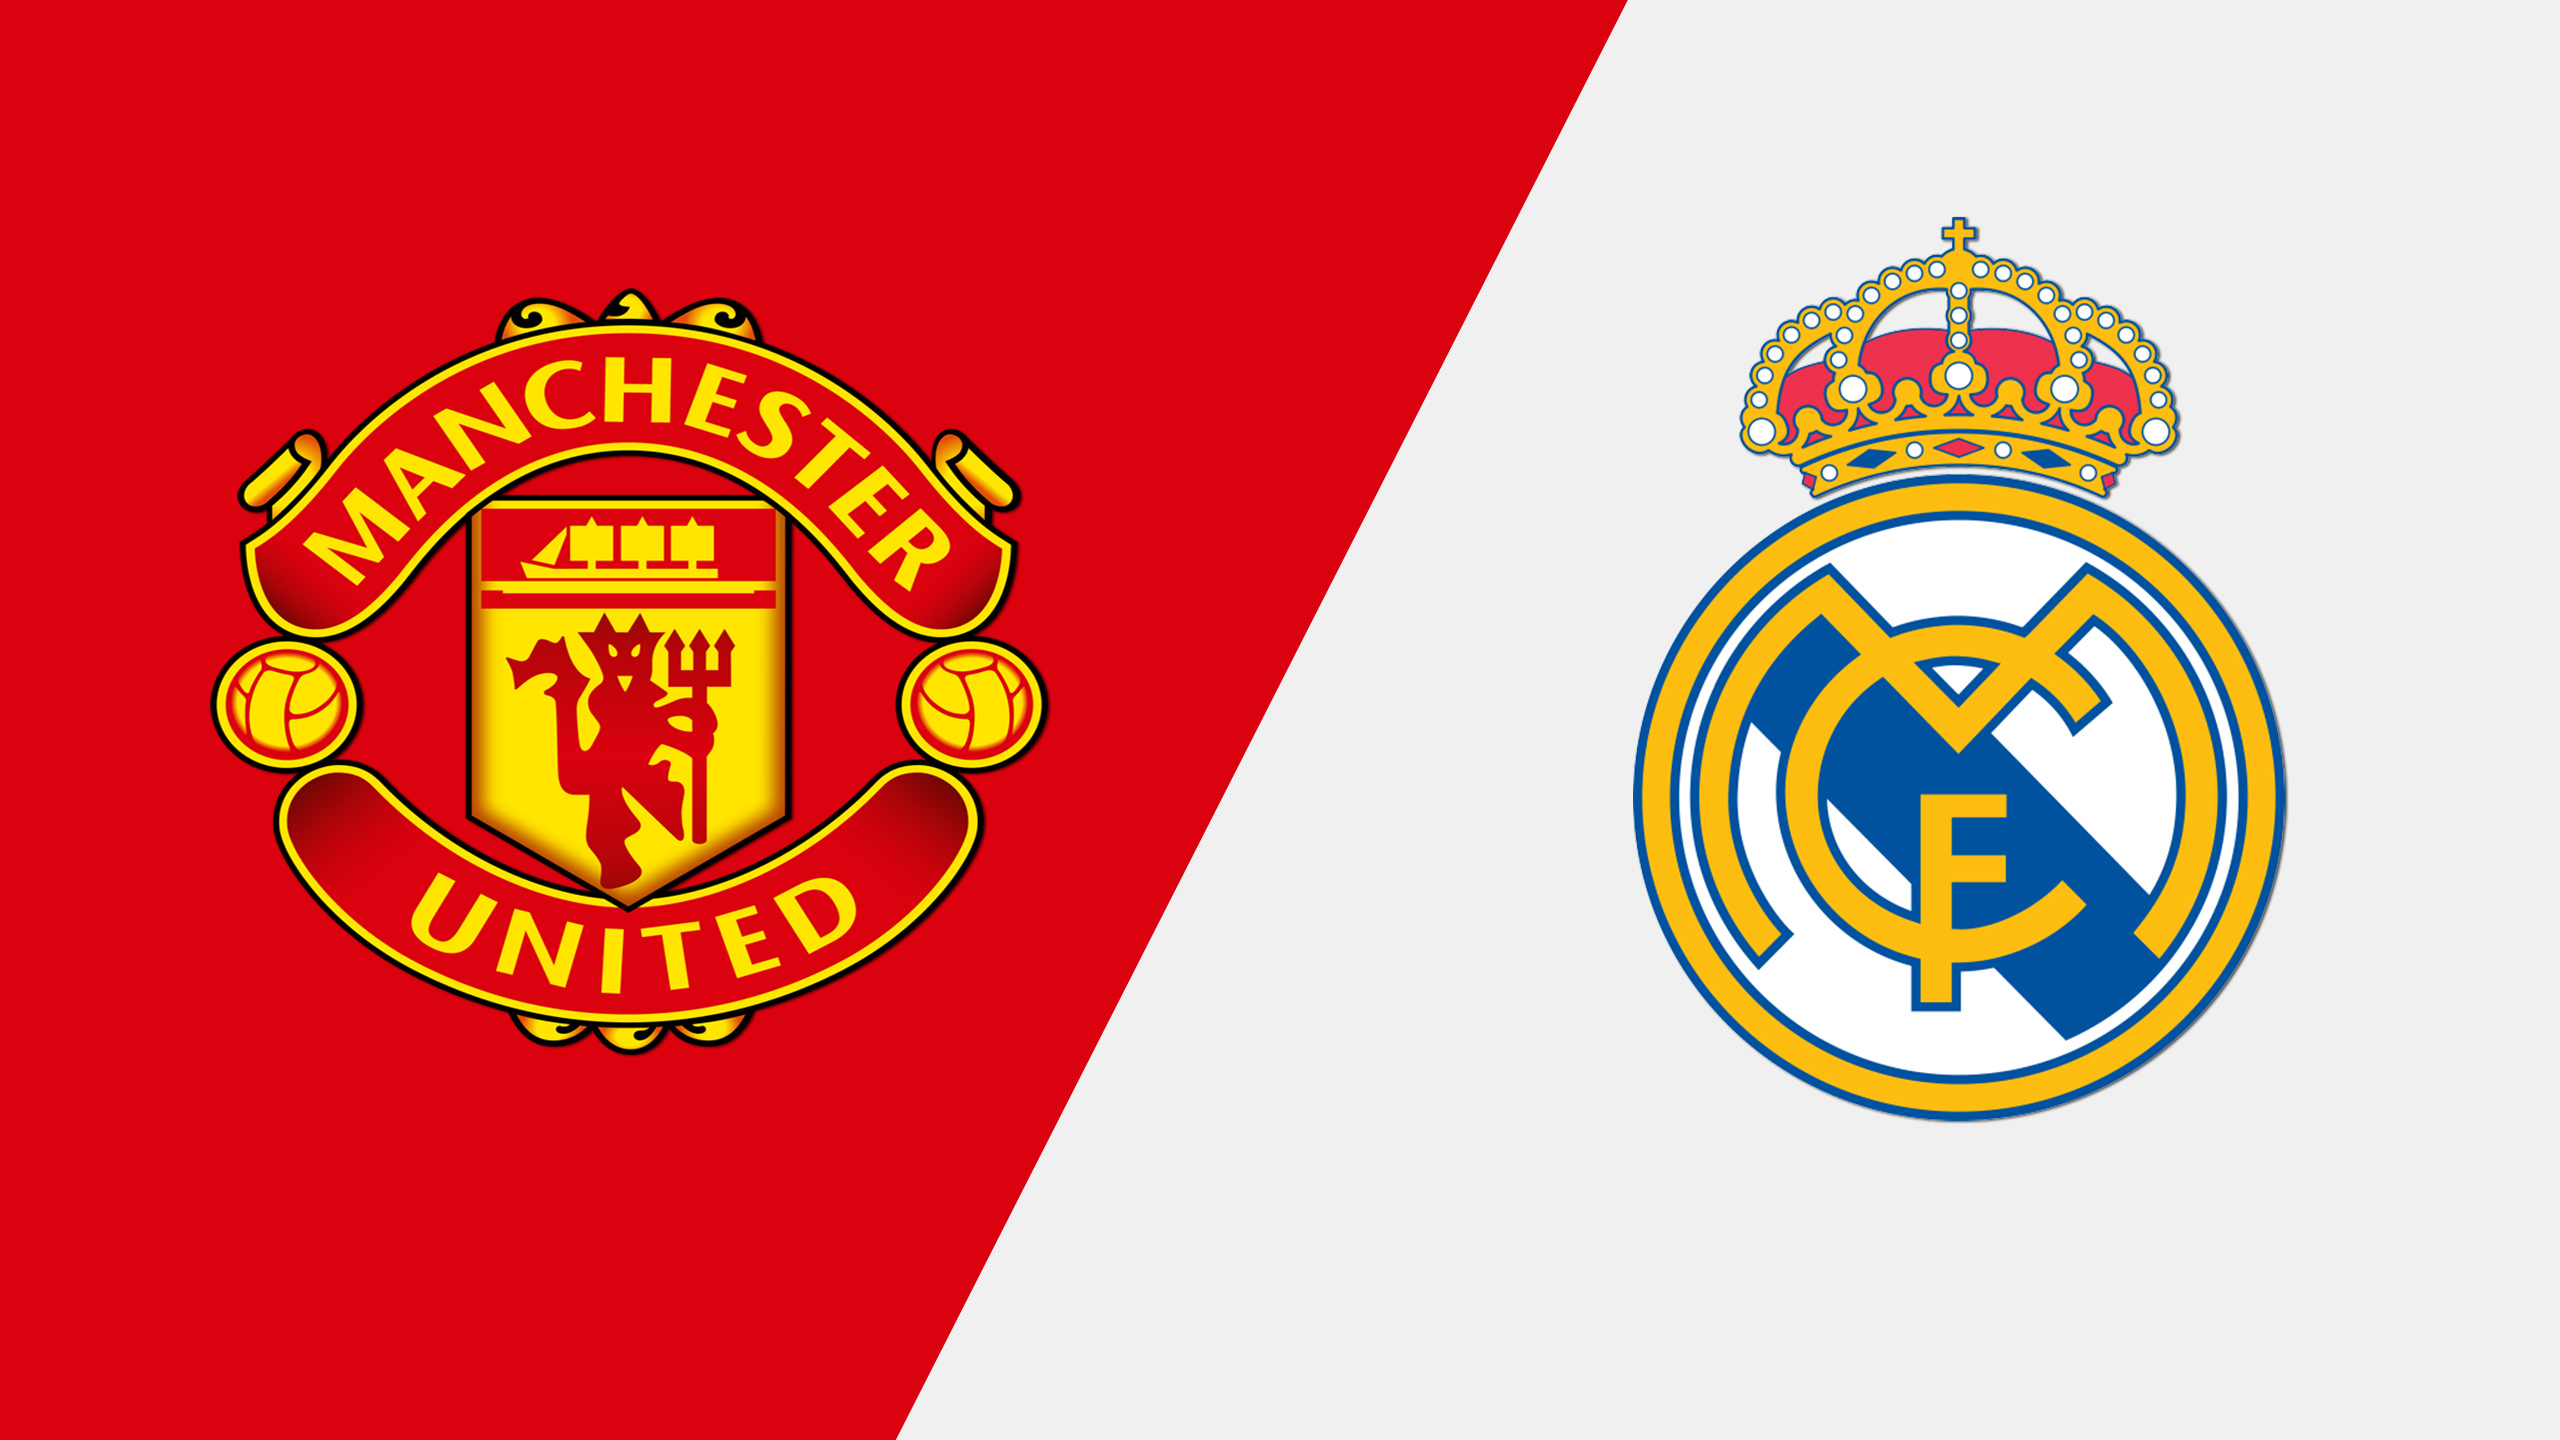 In Spanish - Manchester United vs. Real Madrid (International Champions Cup) (re-air)